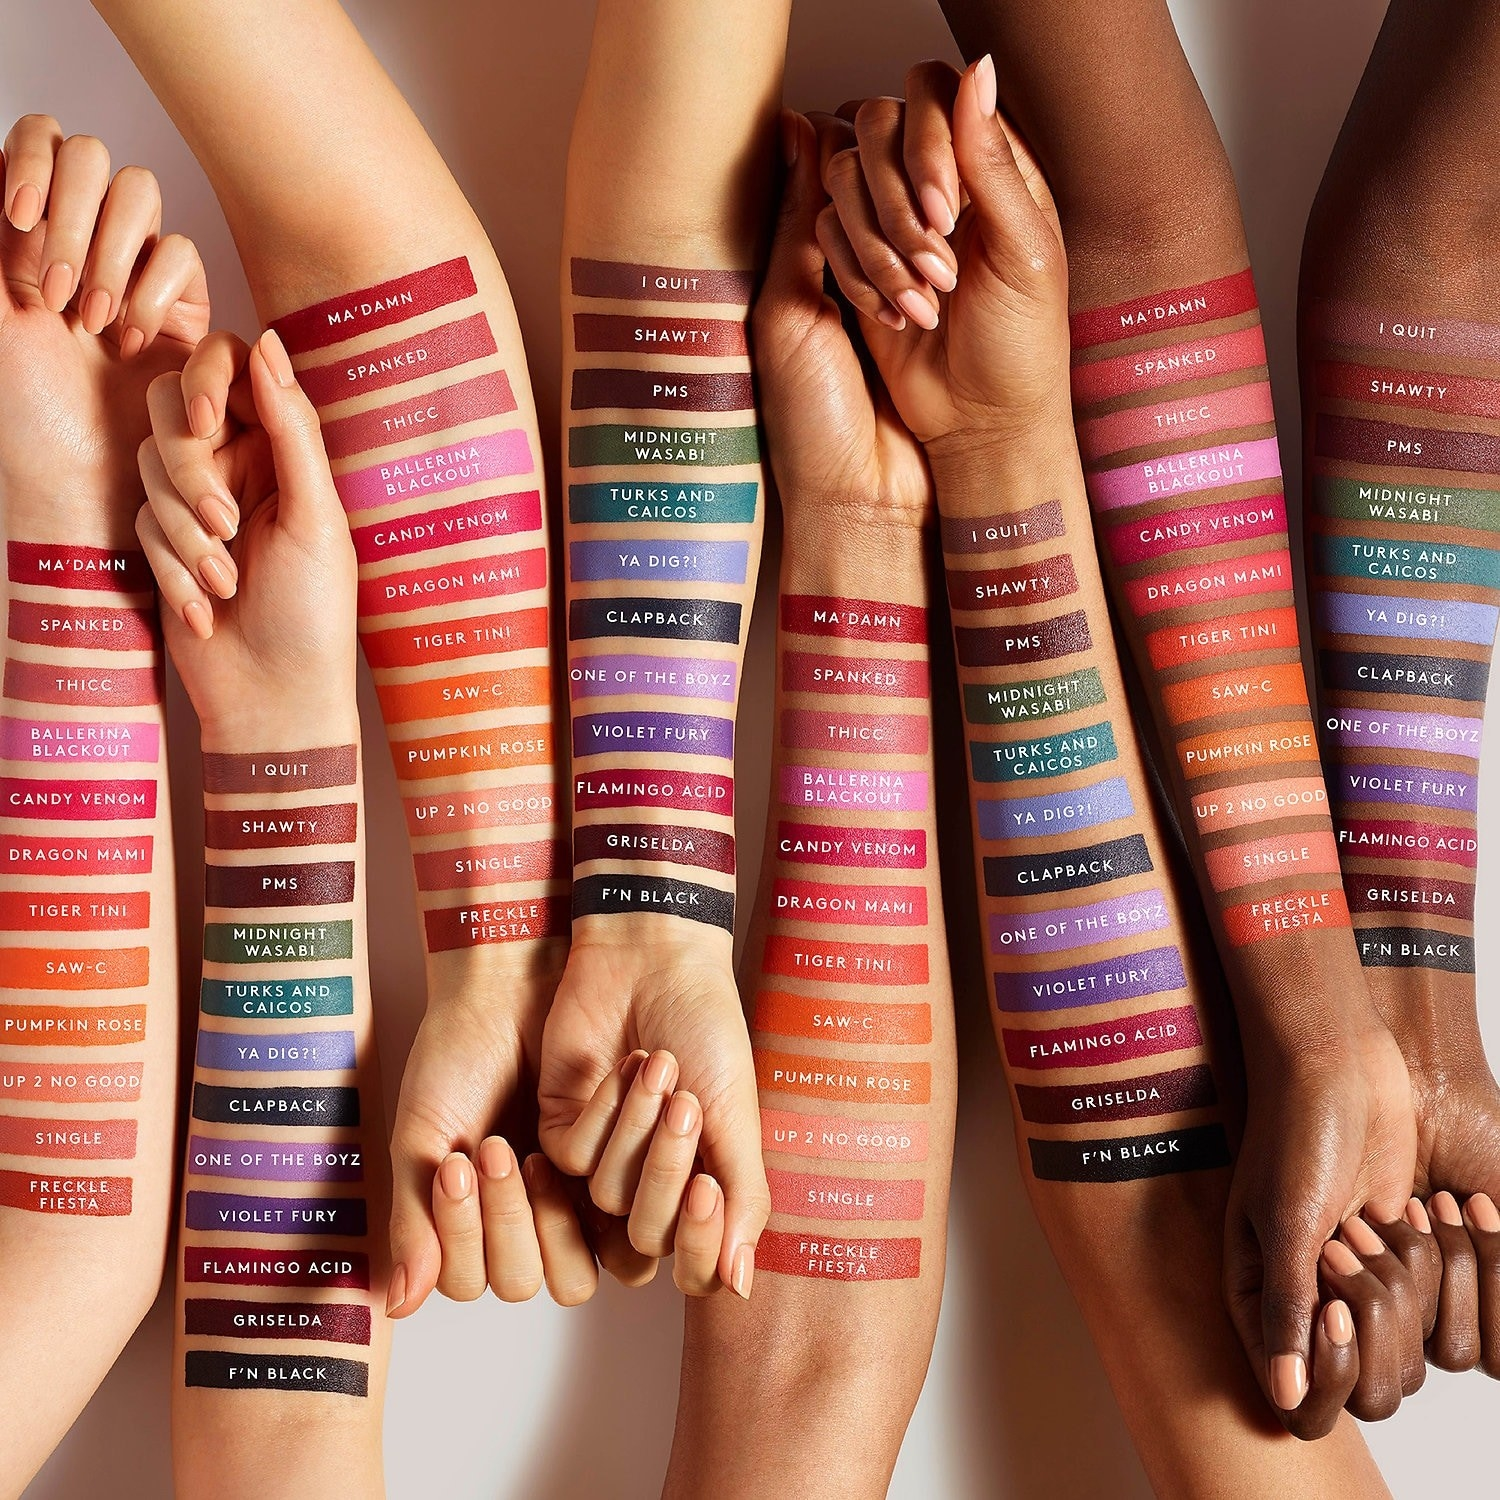 Lipstick swatches in different colors on arms with different skin tones